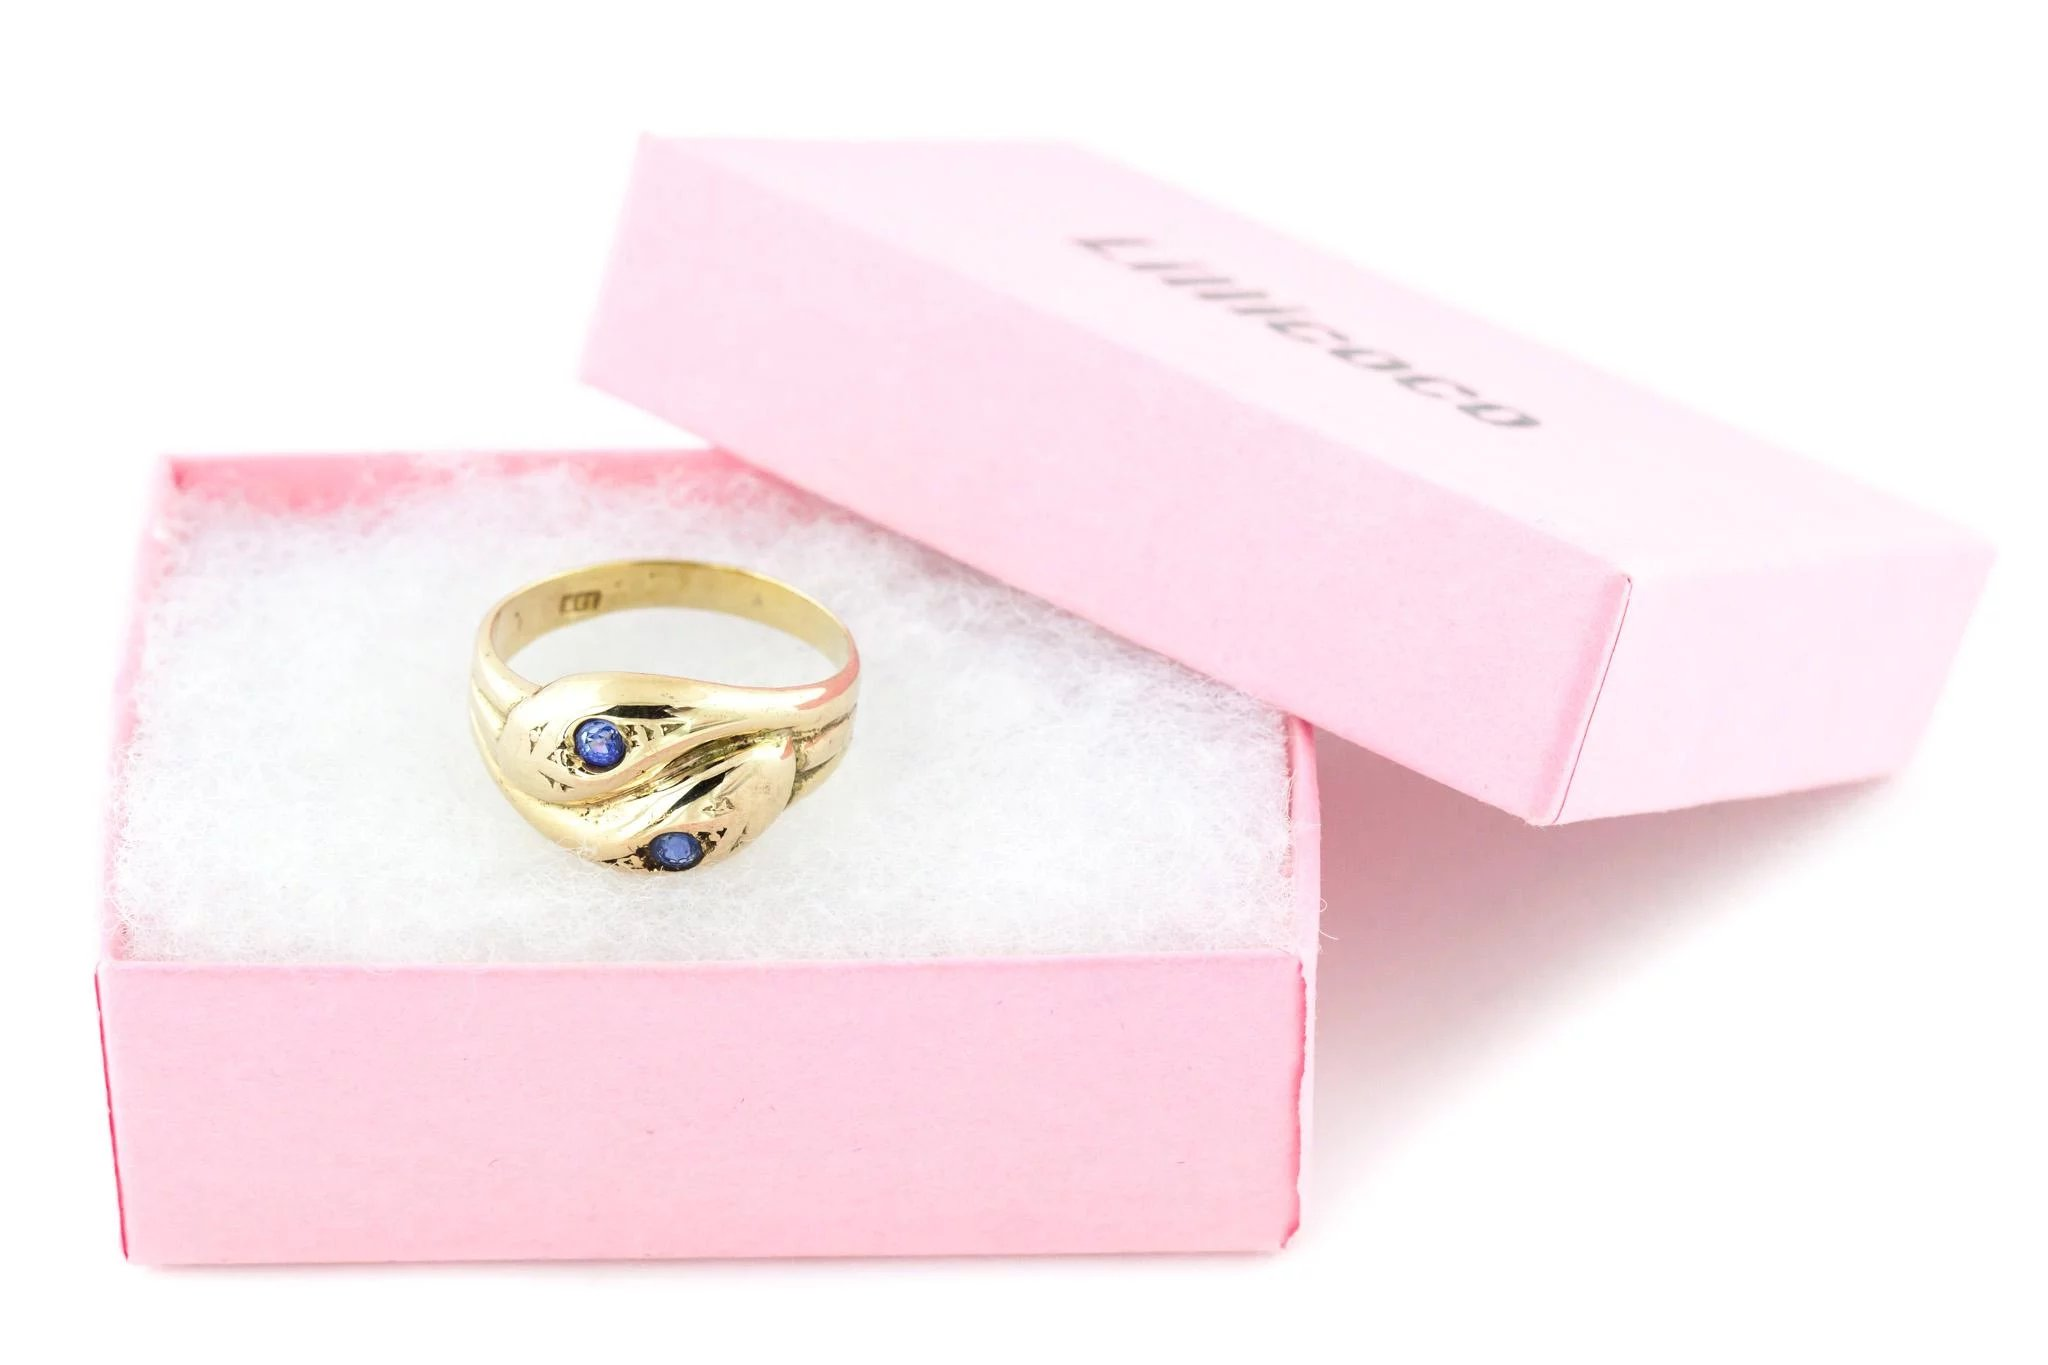 9ct Gold Vintage Snake Ring With Sapphires - Gold Double Snake Ring ...